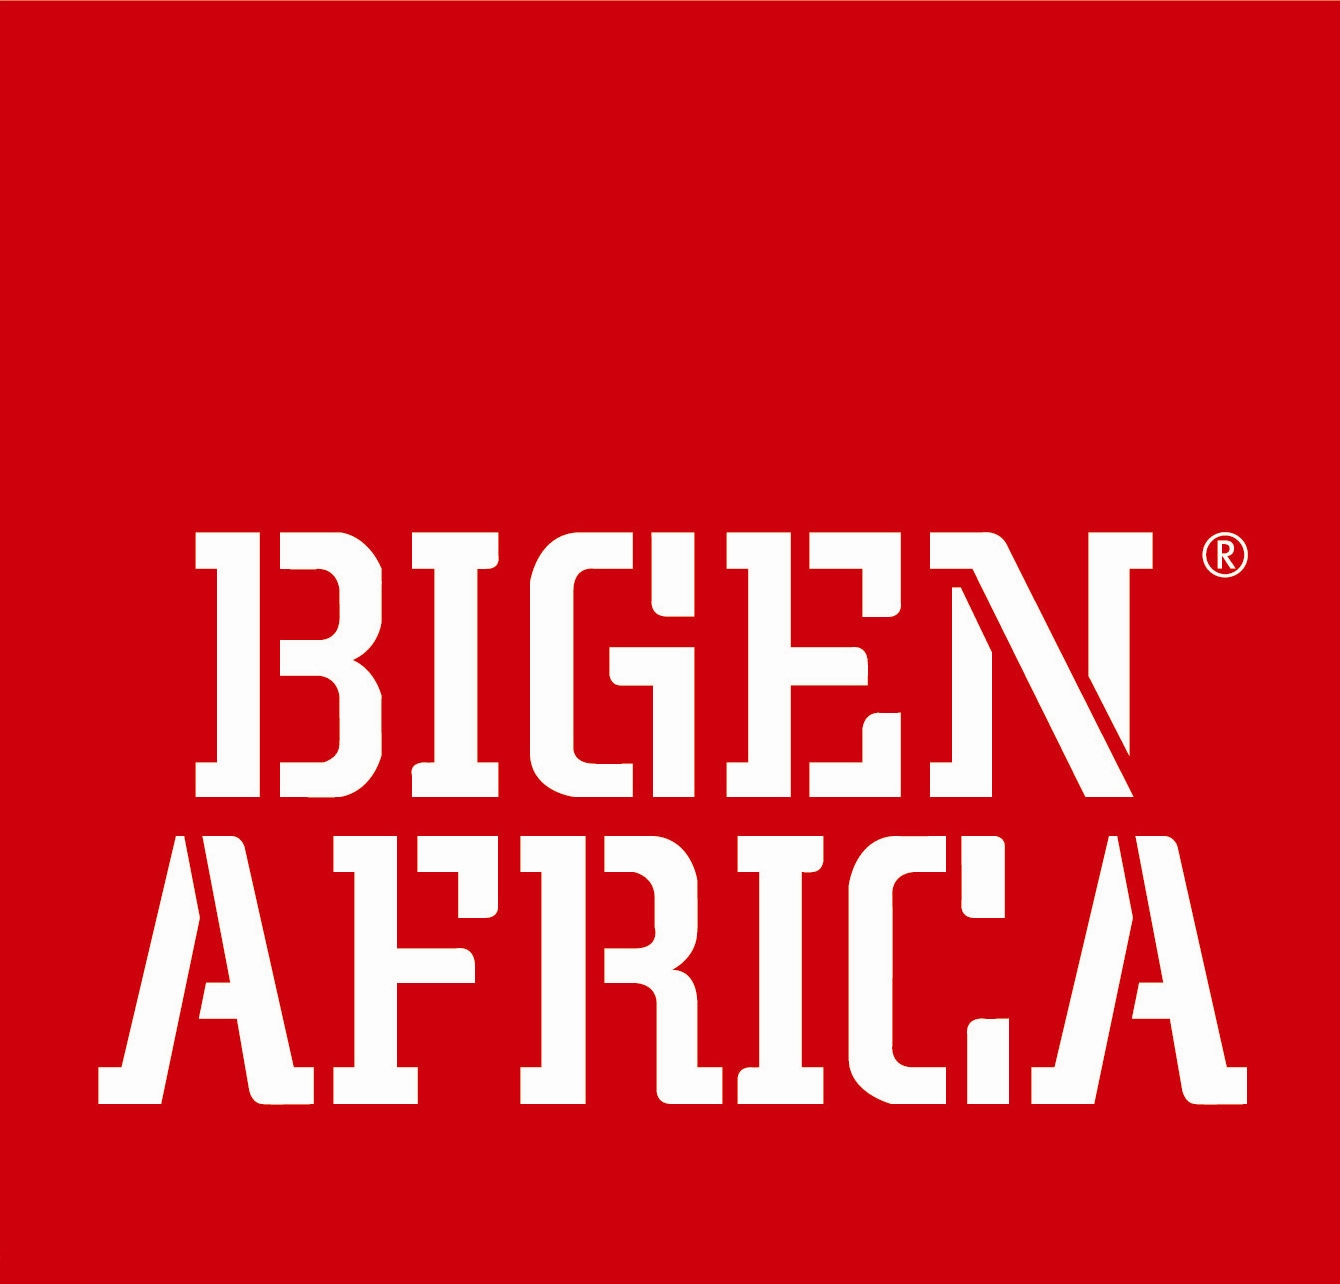 Bigen Africa Group Holdings (Pty) Ltd